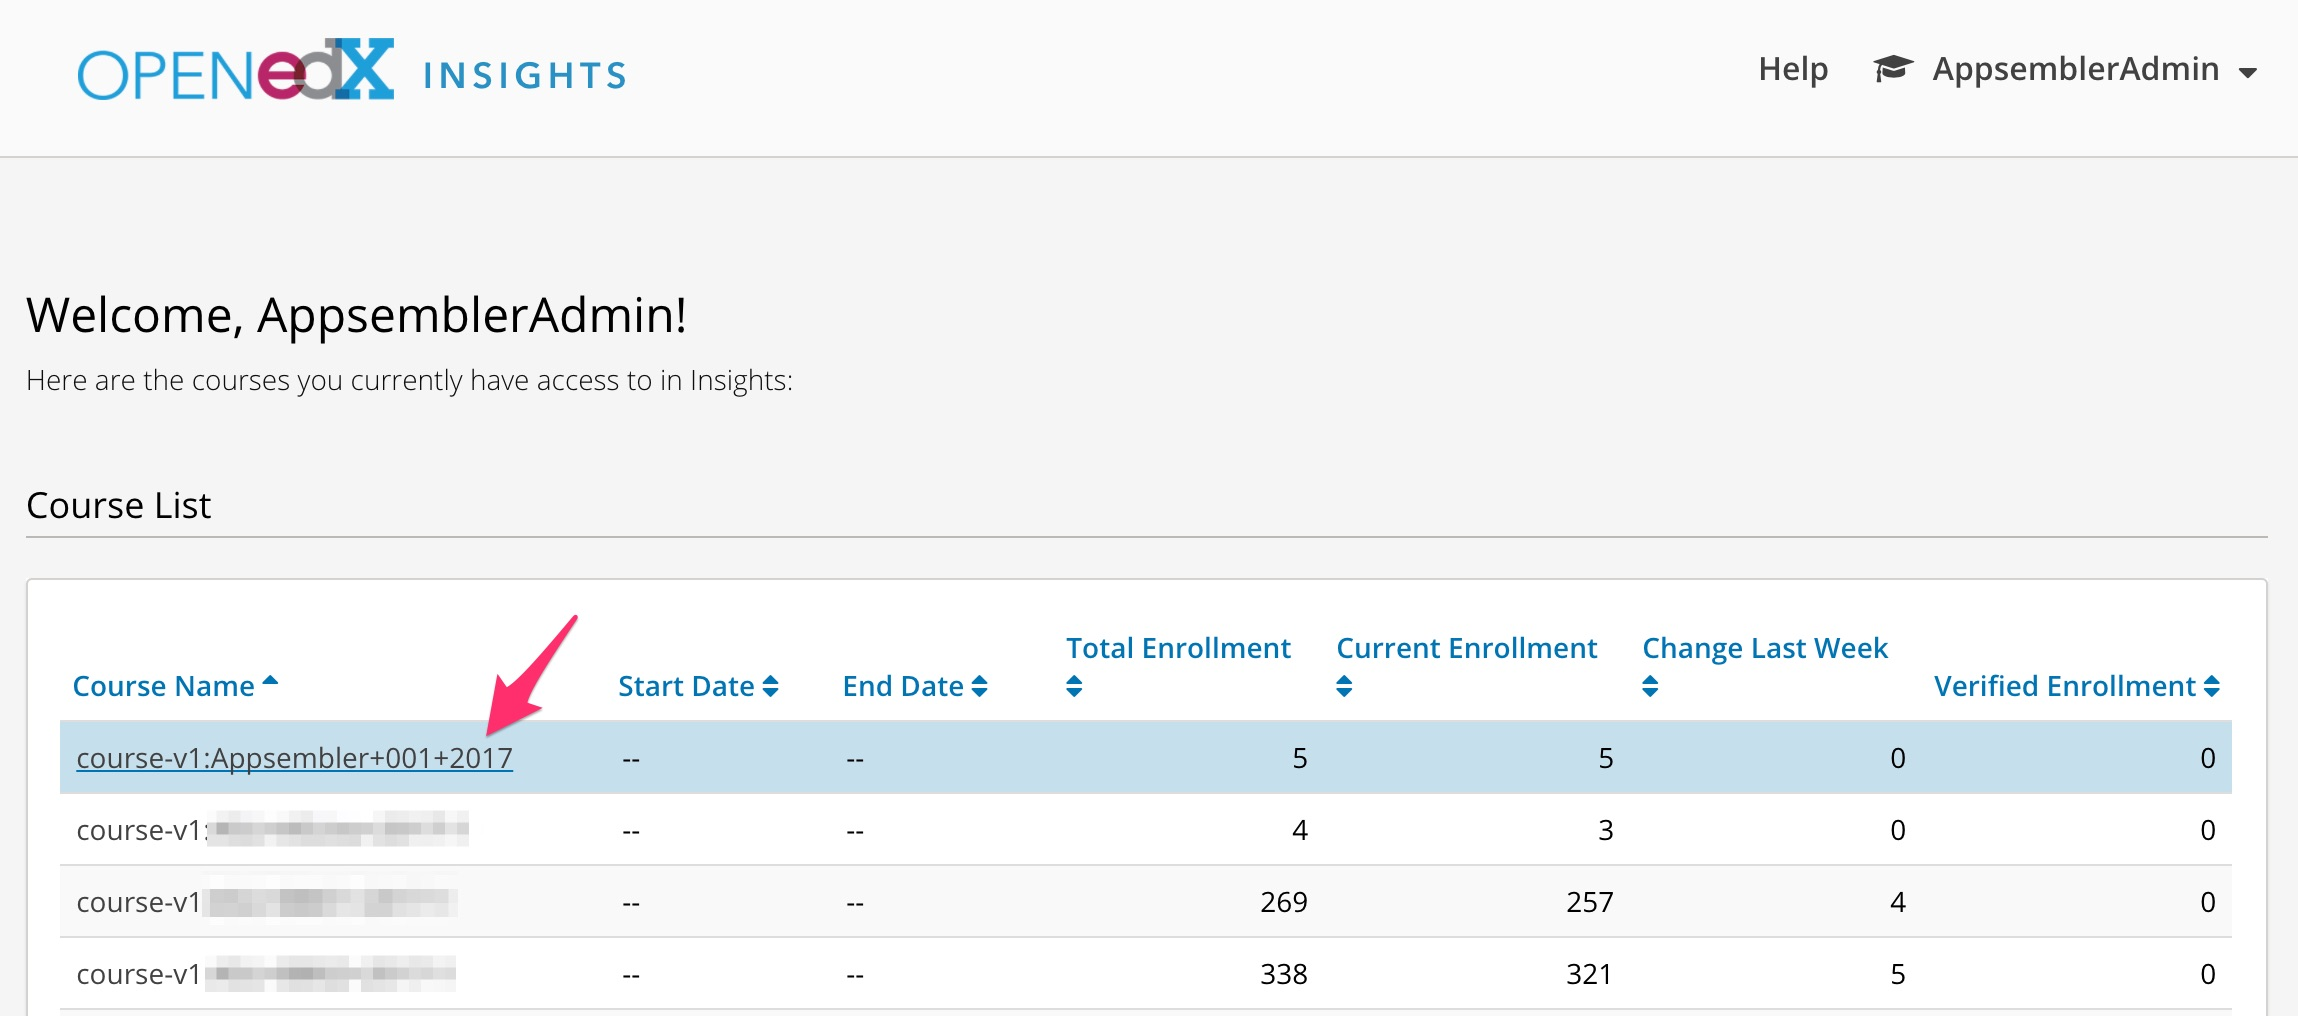 Viewing enrollment numbers and activity in Open edX Insights